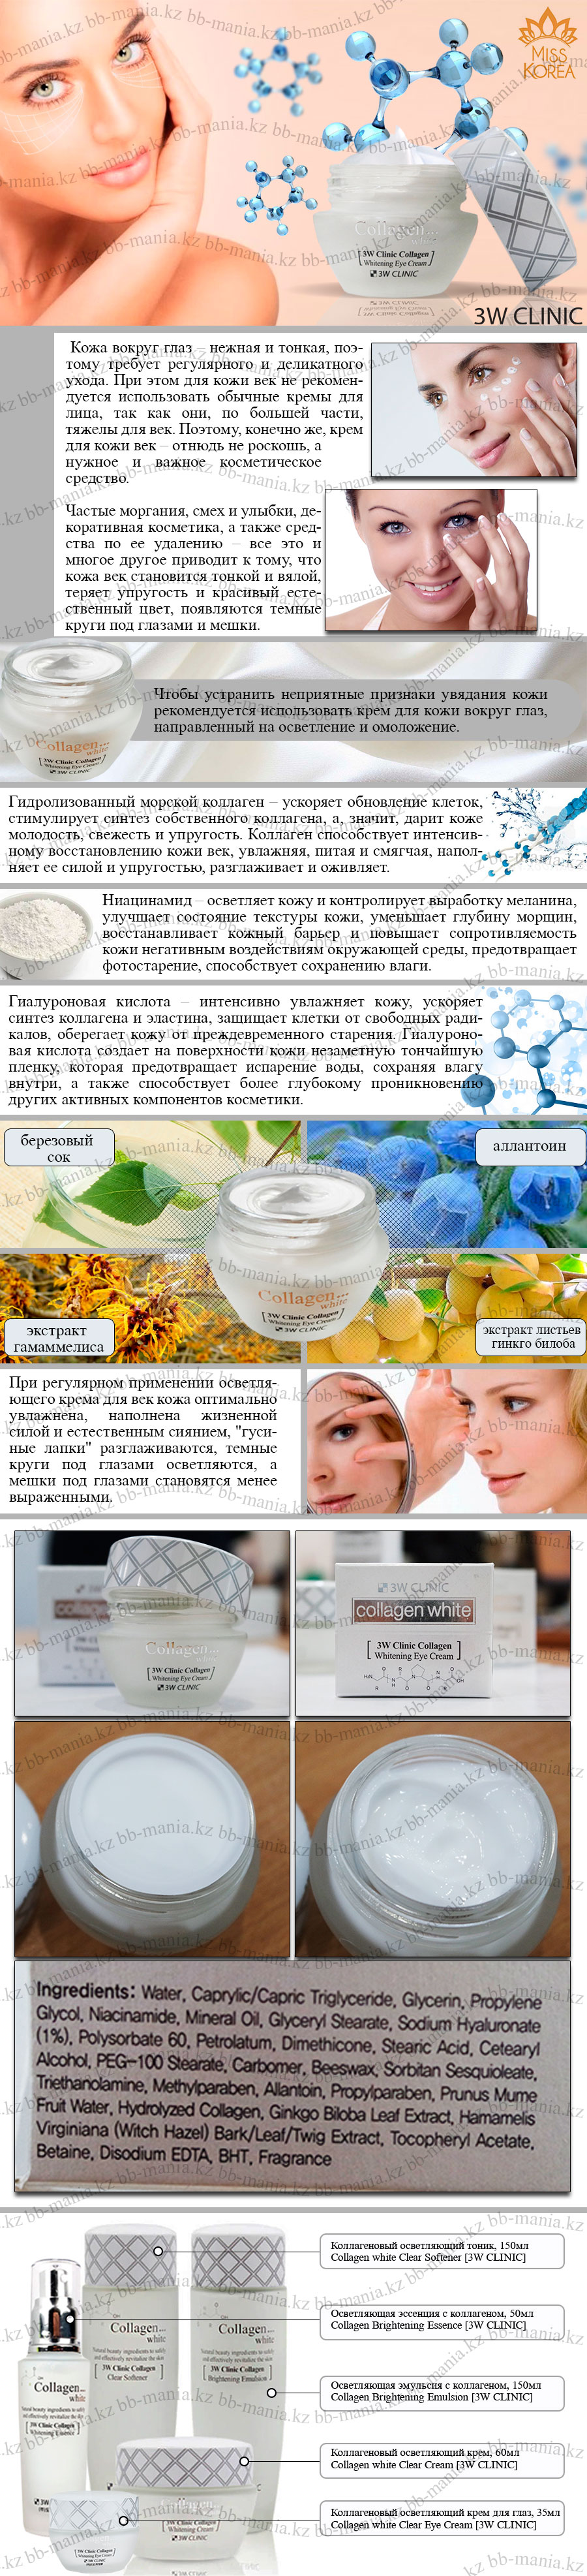 Collagen-Whitening-Eye-Cream-[3W-CLINIC]-min